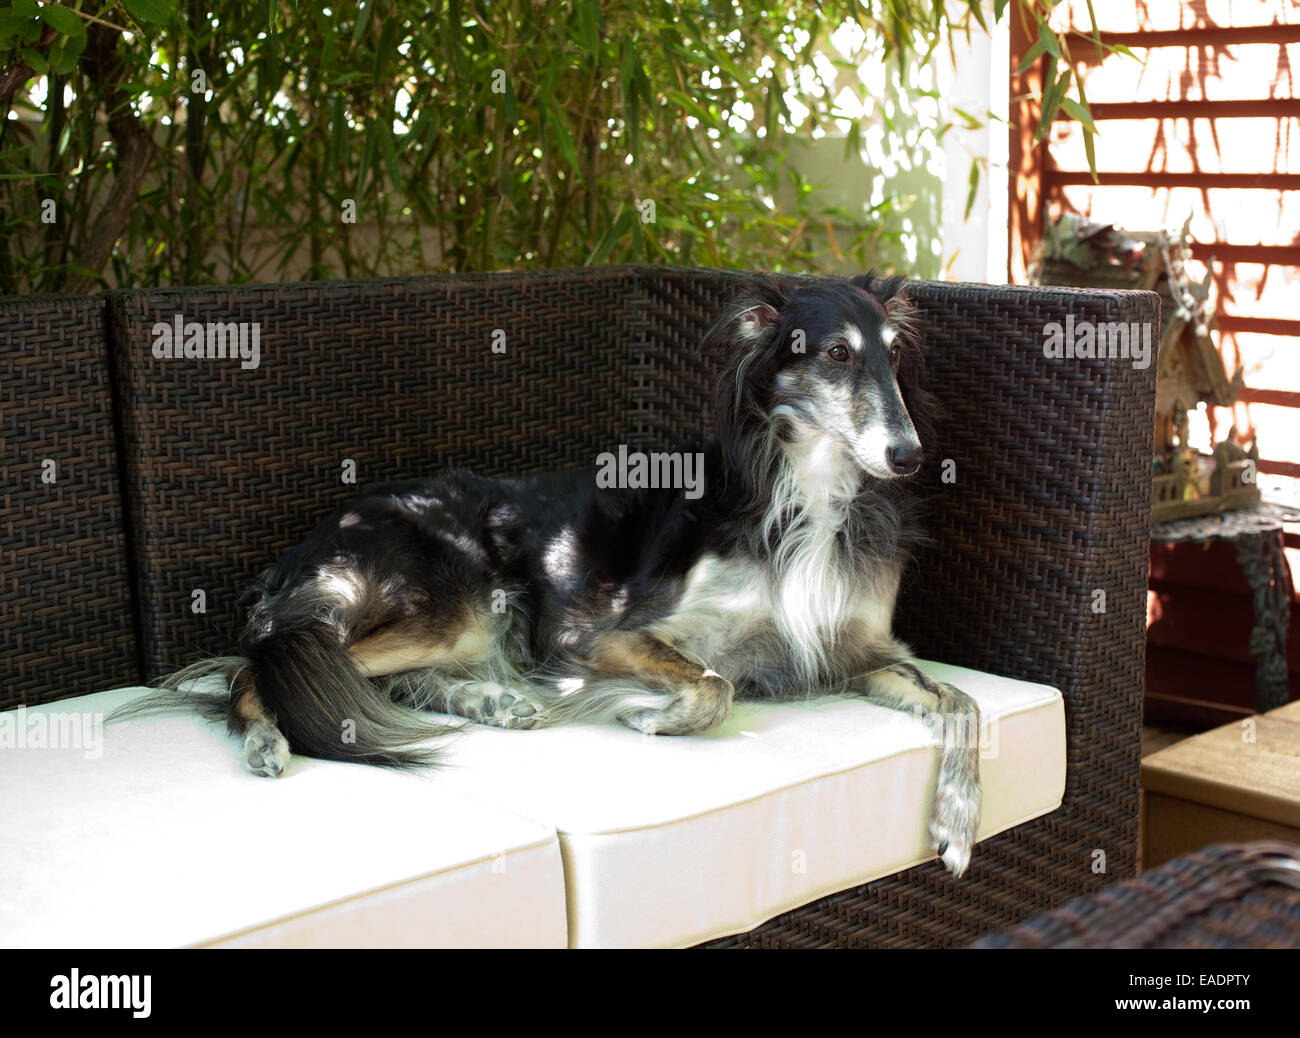 Dog reclining on outdoor furniture on porch at home - Stock Image - Outdoor Furniture Stock Photos & Outdoor Furniture Stock Images - Alamy